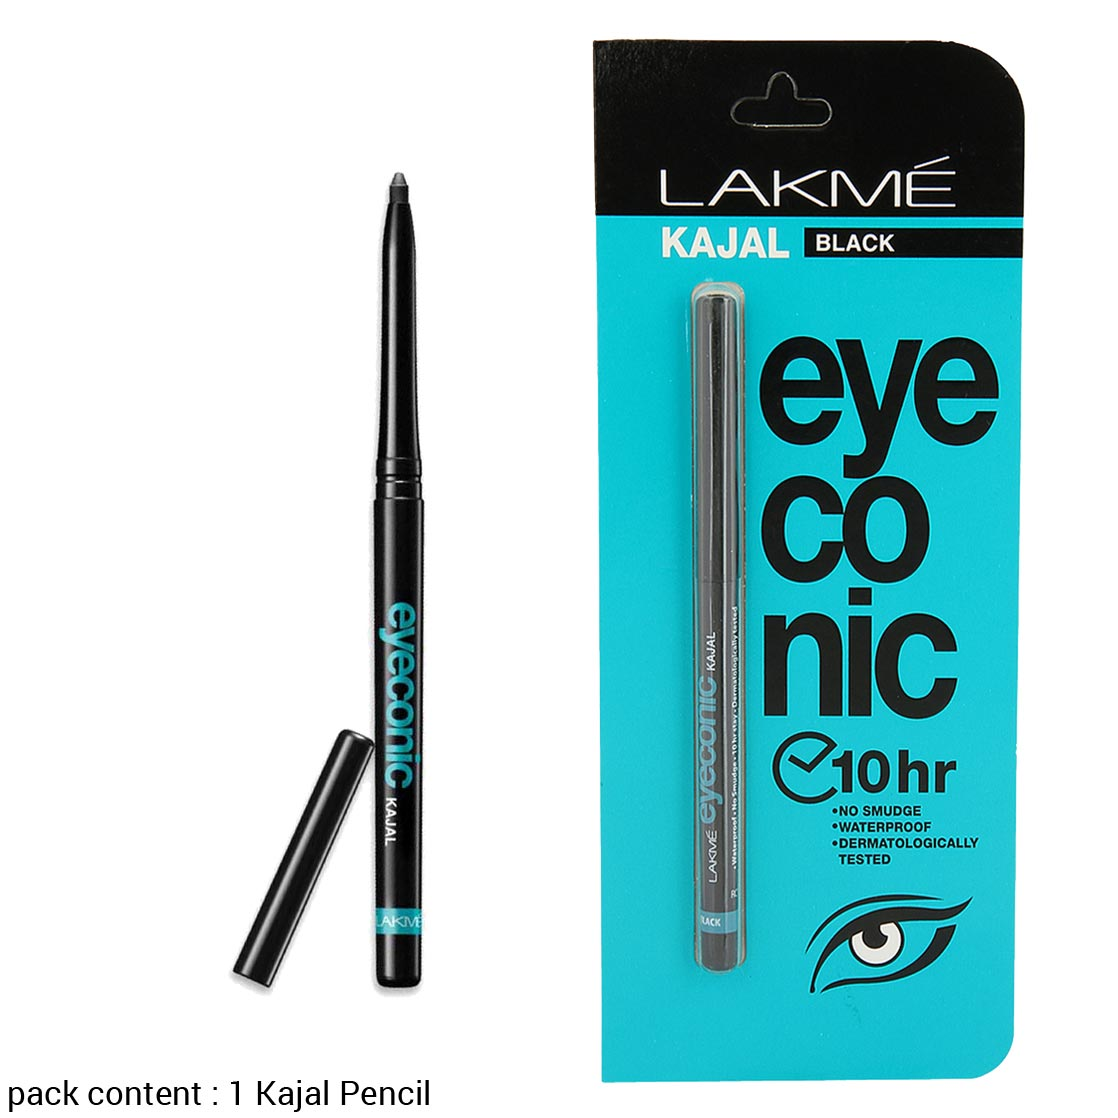 Lakme Eyeconic 10 Hour Lasting Smudge Proof Kajal